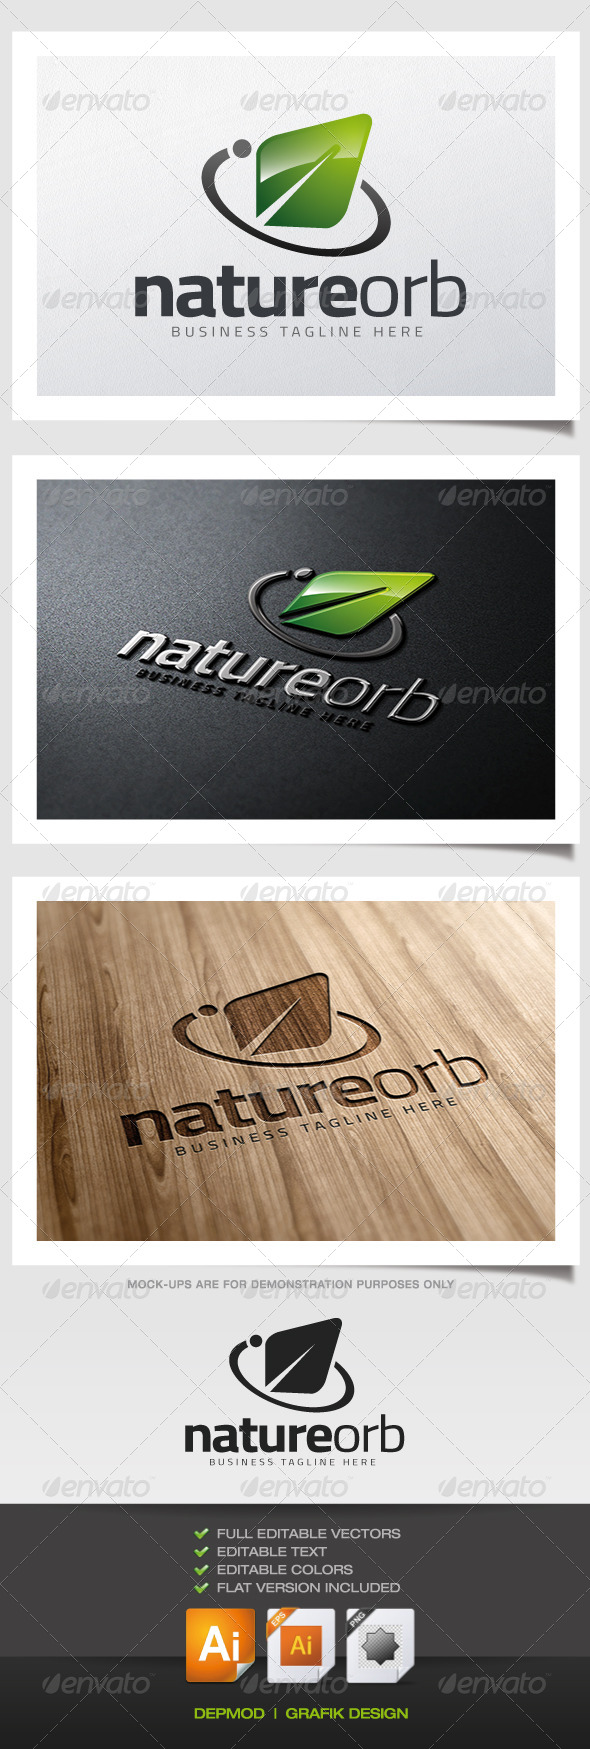 Nature Orb Logo - Nature Logo Templates